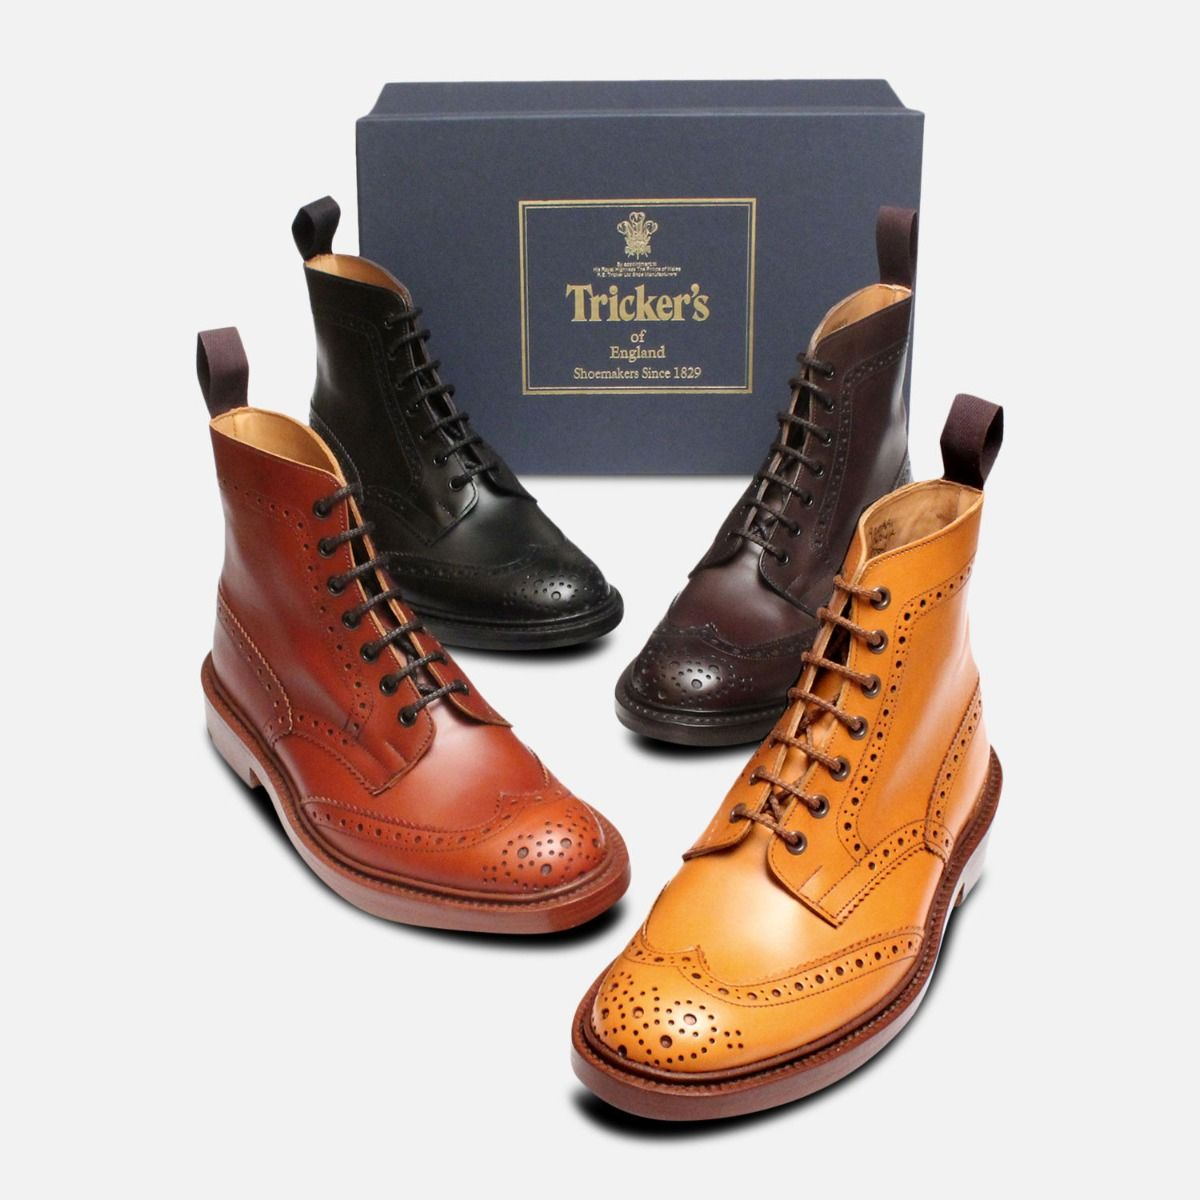 Trickers Stow Black Dainite Brogue Boots